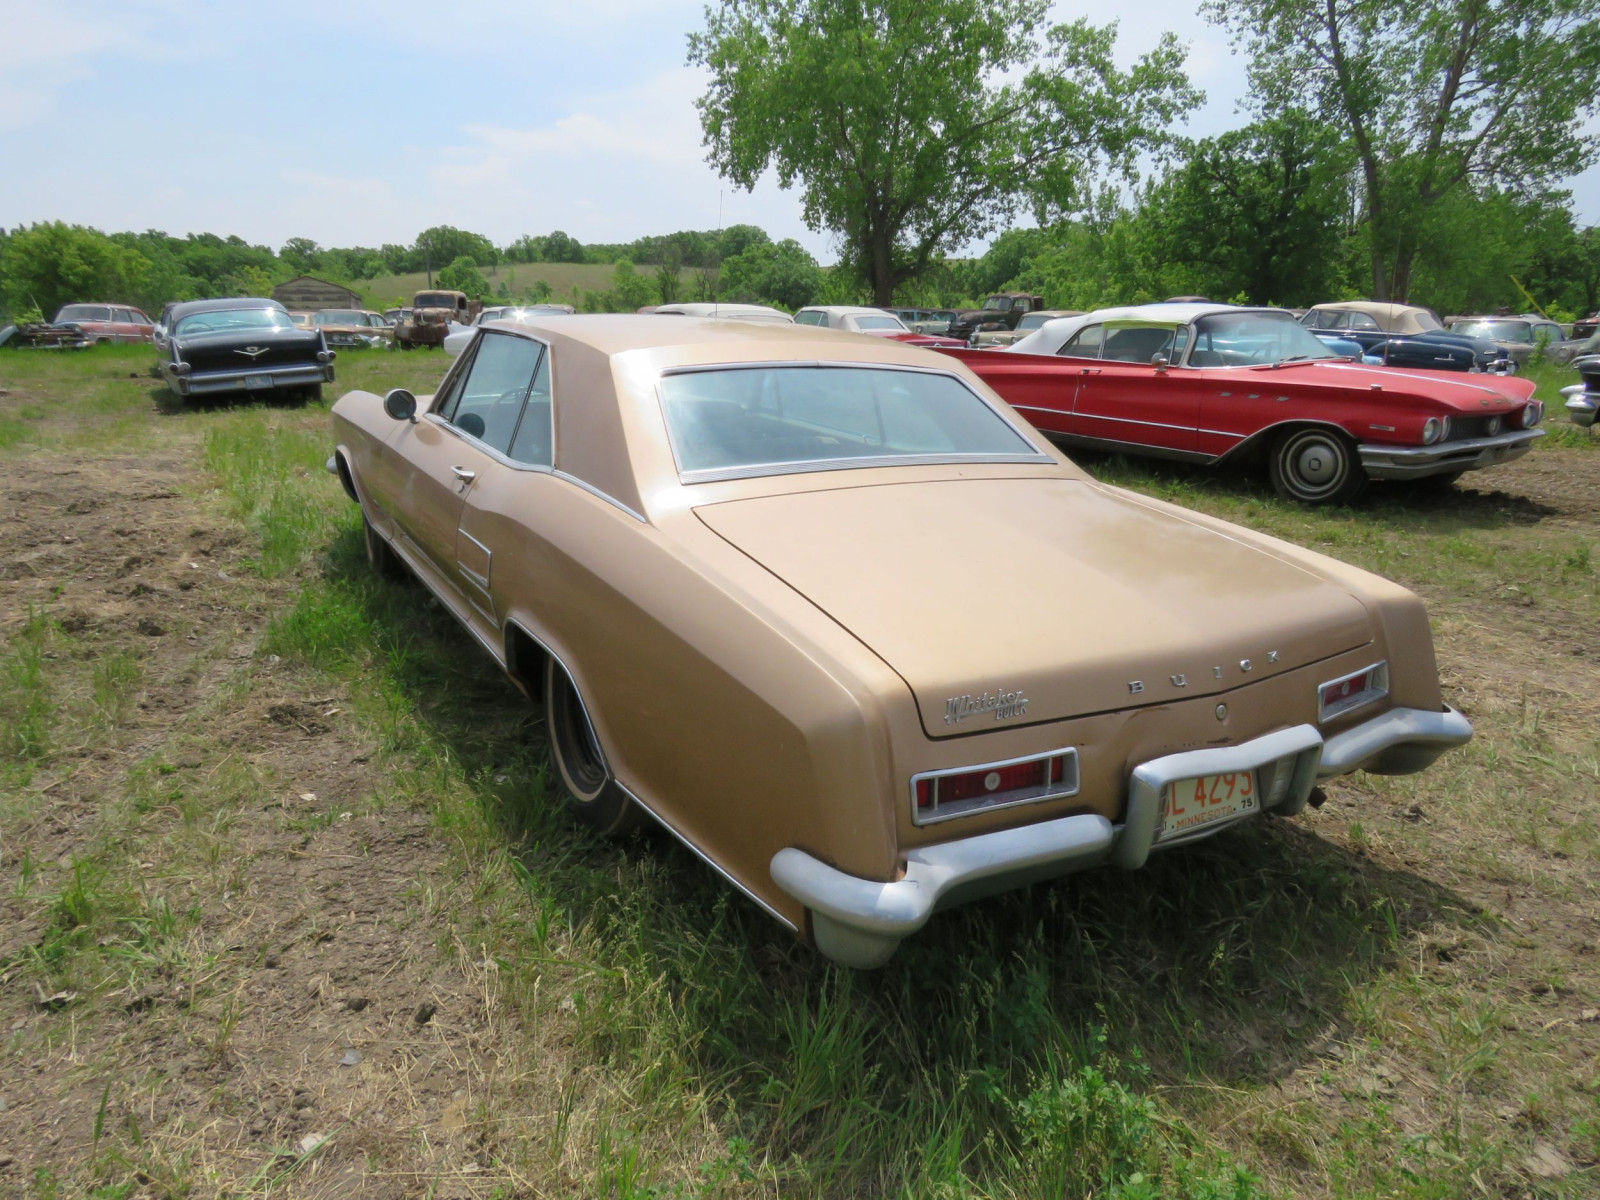 1967 Buick Riviera Coupe 7J1057263 - Image 5